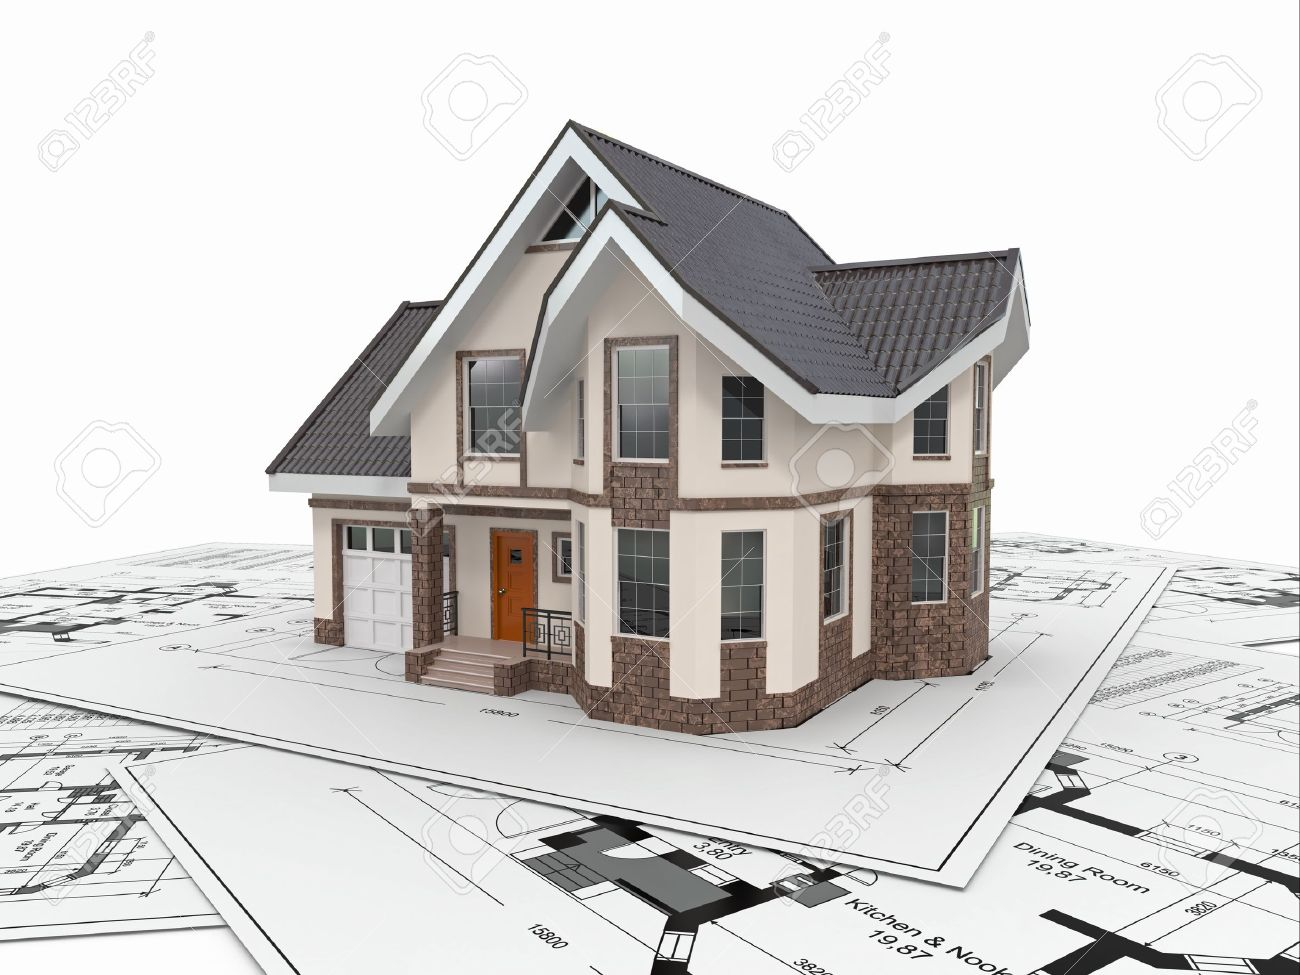 Residential House With Tools On Architect Blueprints Housing Project 3d Stock Photo 17299224